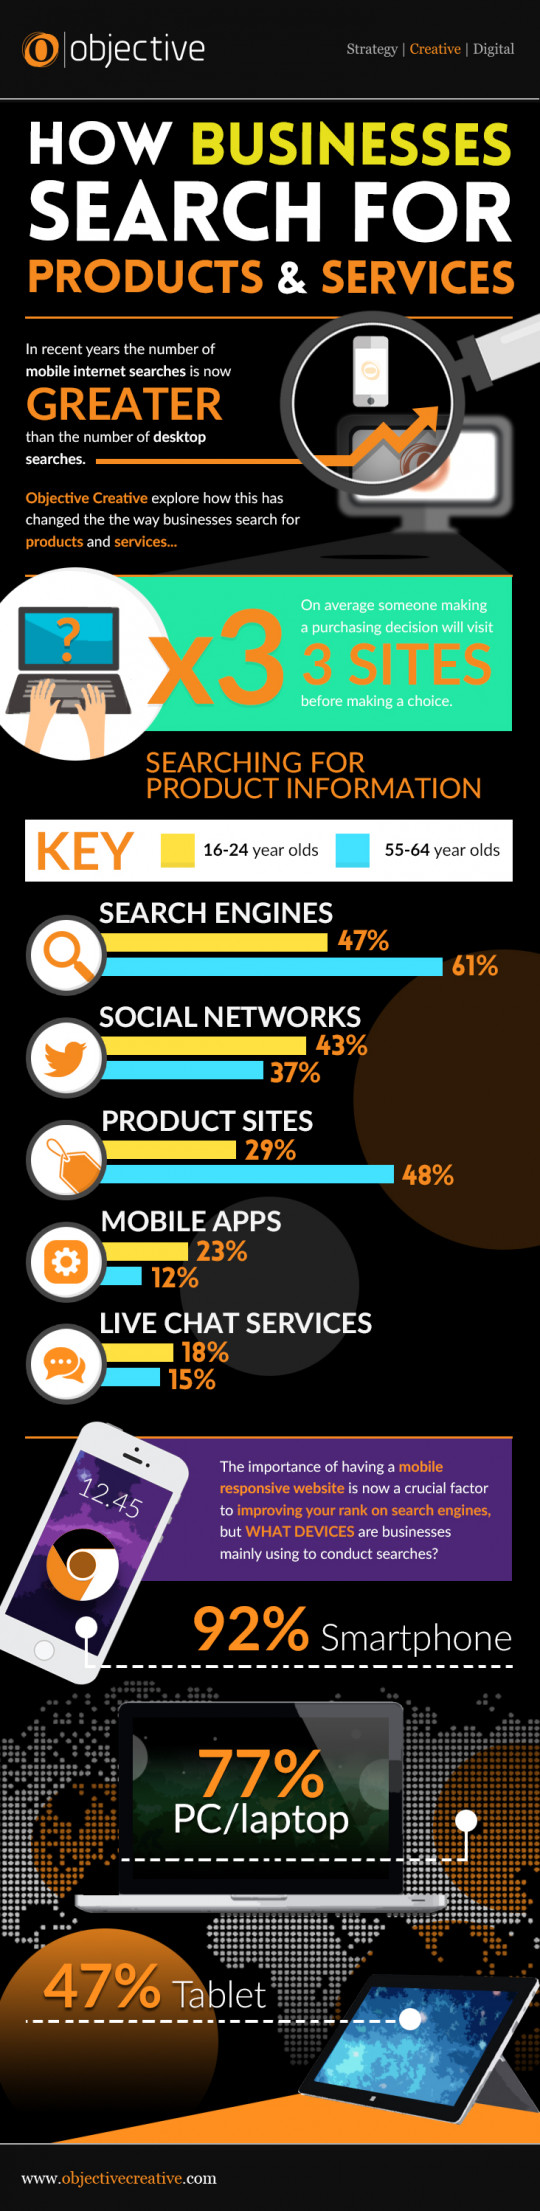 How Businesses Search For Products & Services